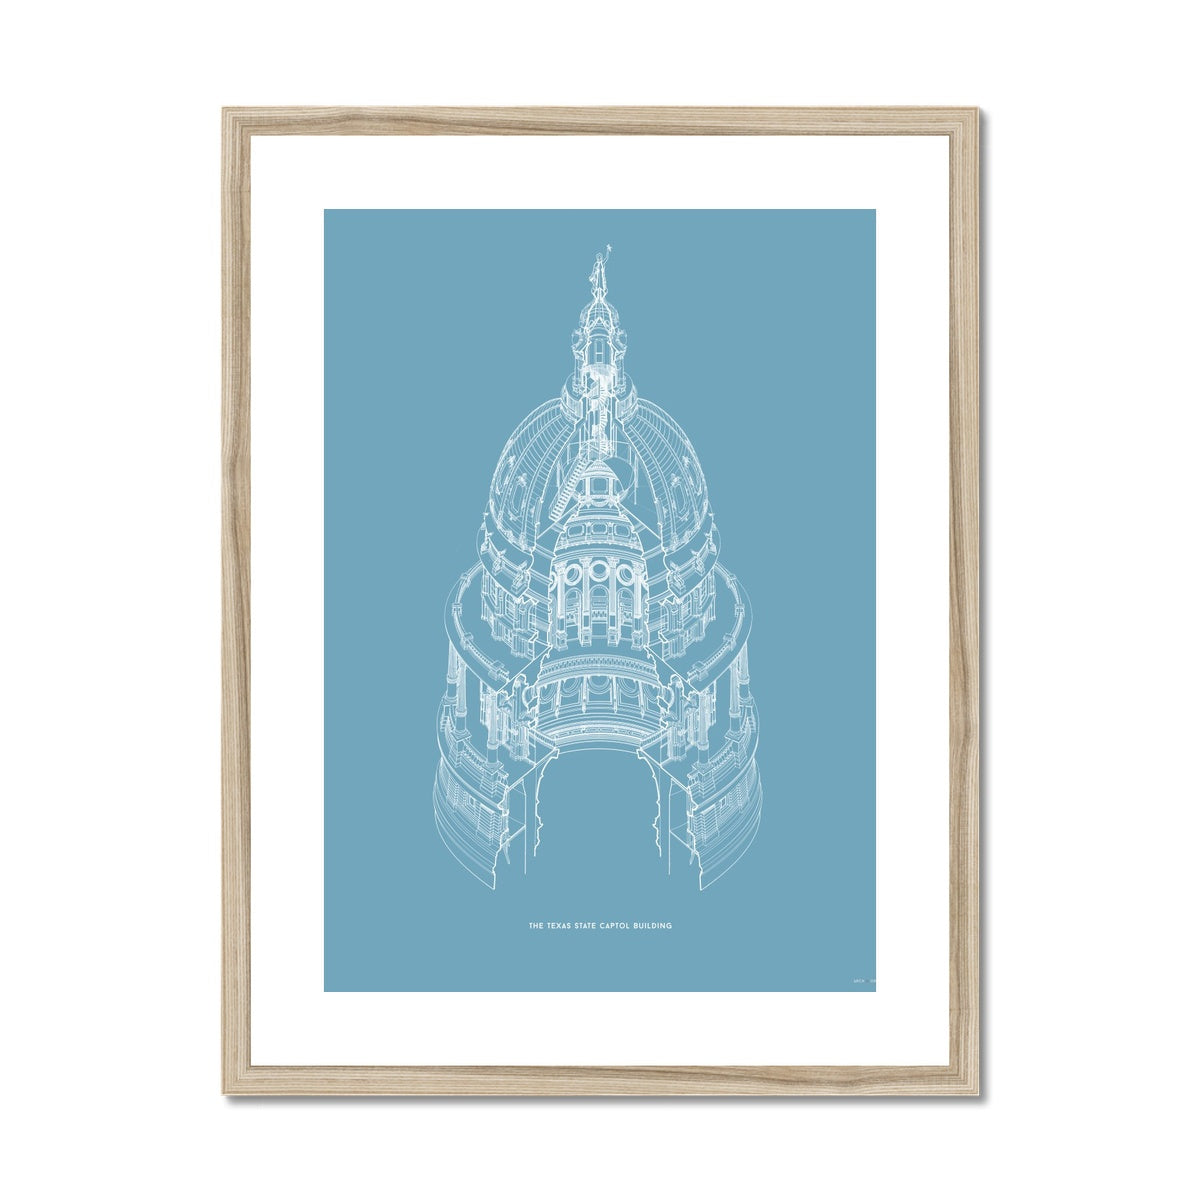 The Texas State Capitol Building - Dome Axonometric Cross Section - Blue -  Framed & Mounted Print